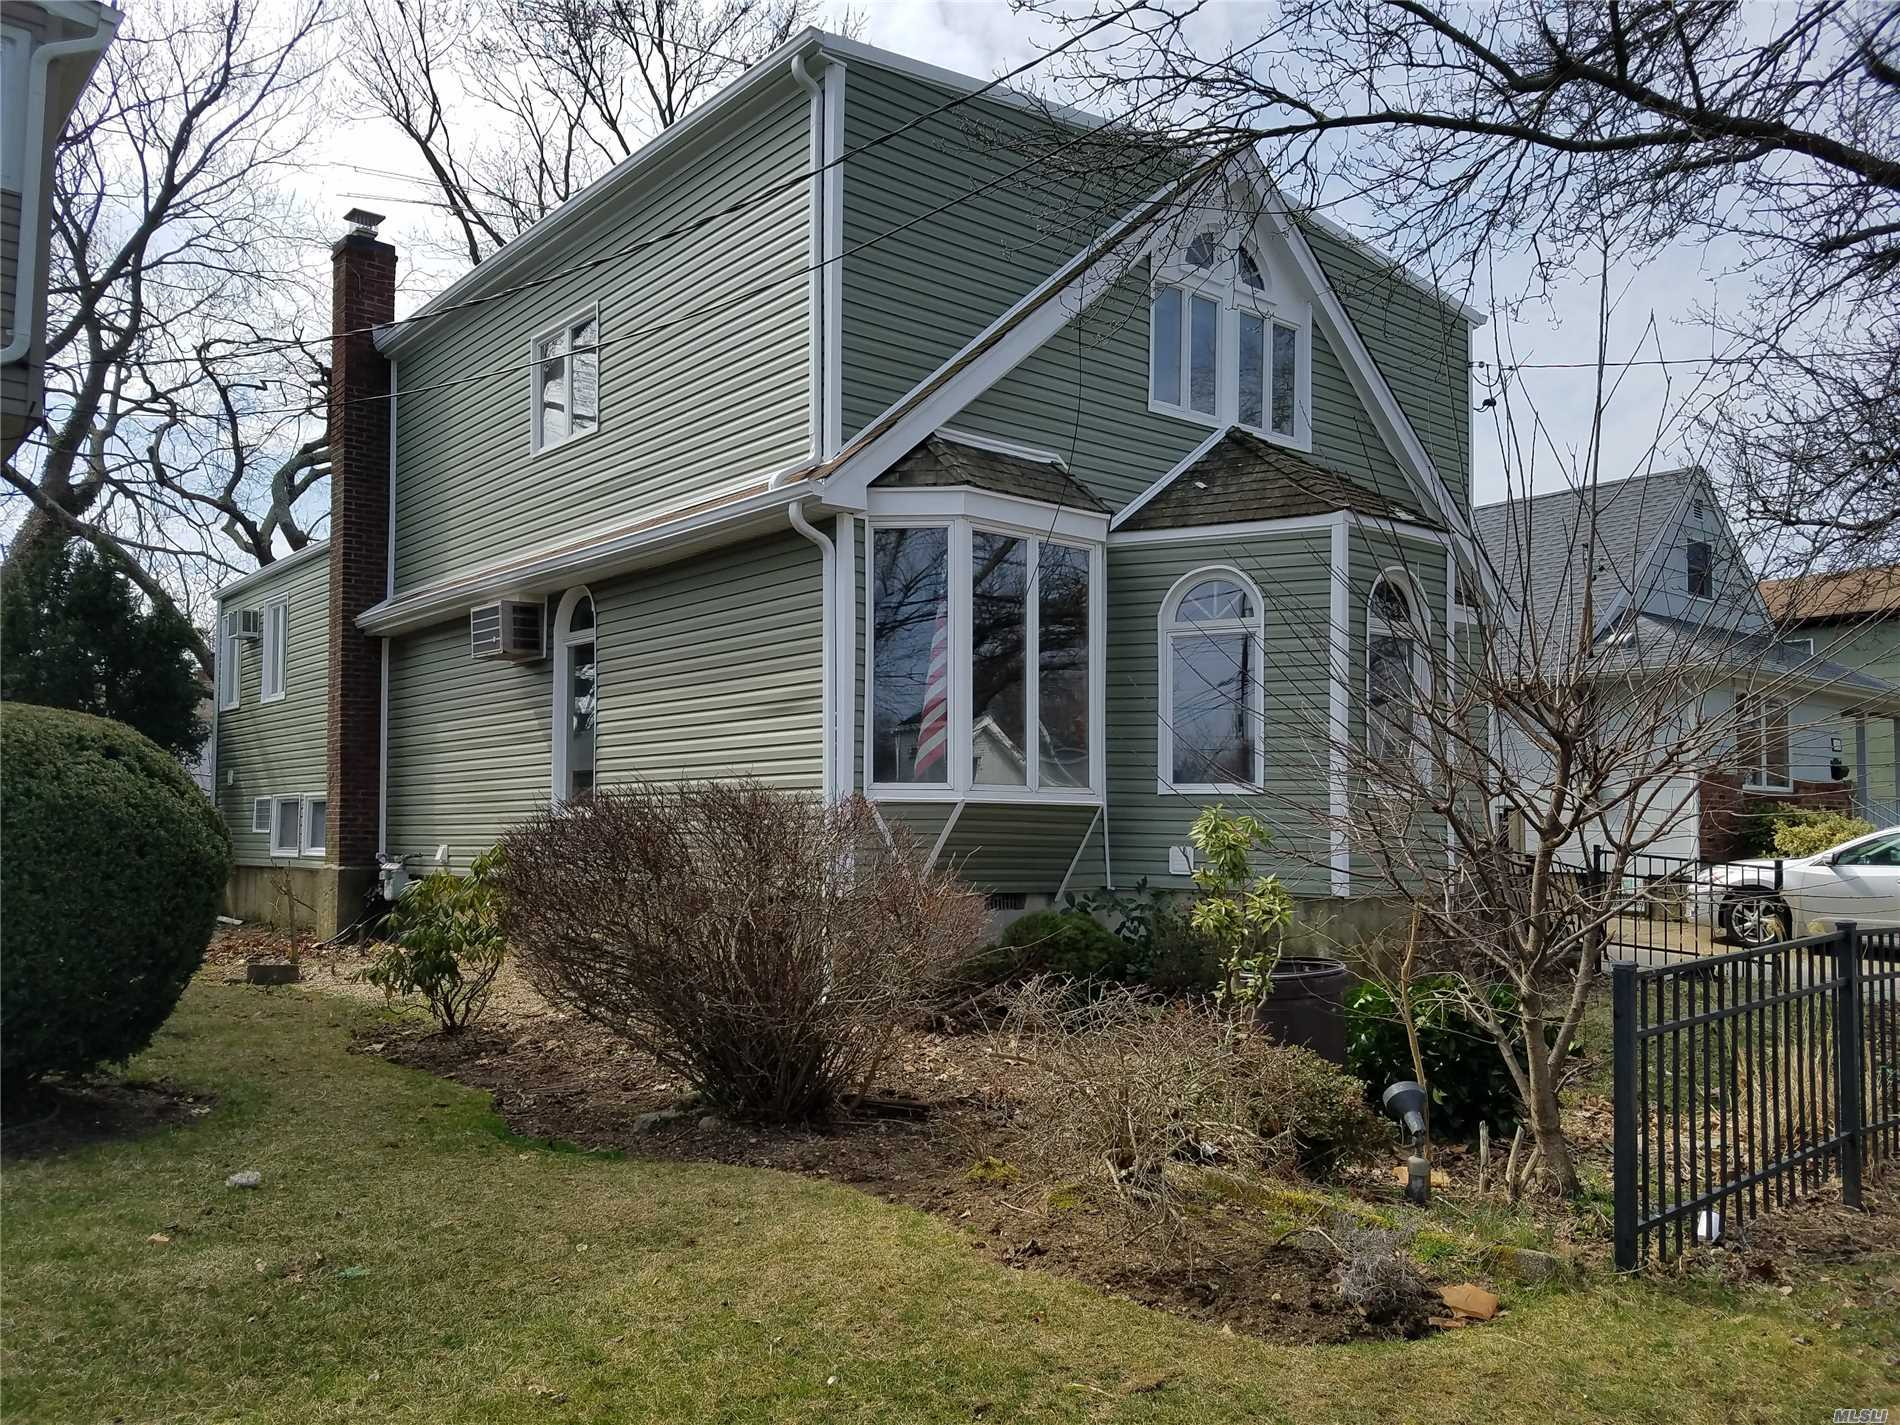 Beautifully Fully Renovated Large Split Level Home In Beautifull Baldwin Harbor. Great House In A Great Neighborhood, Featuring 4 Bedrooms, 2.5 Bathrooms, Finished Basement With 2 Rooms And A 1/2 Bath, Separated Entrance, Rear Wooden Deck, Baldwin Schools, Close To All.